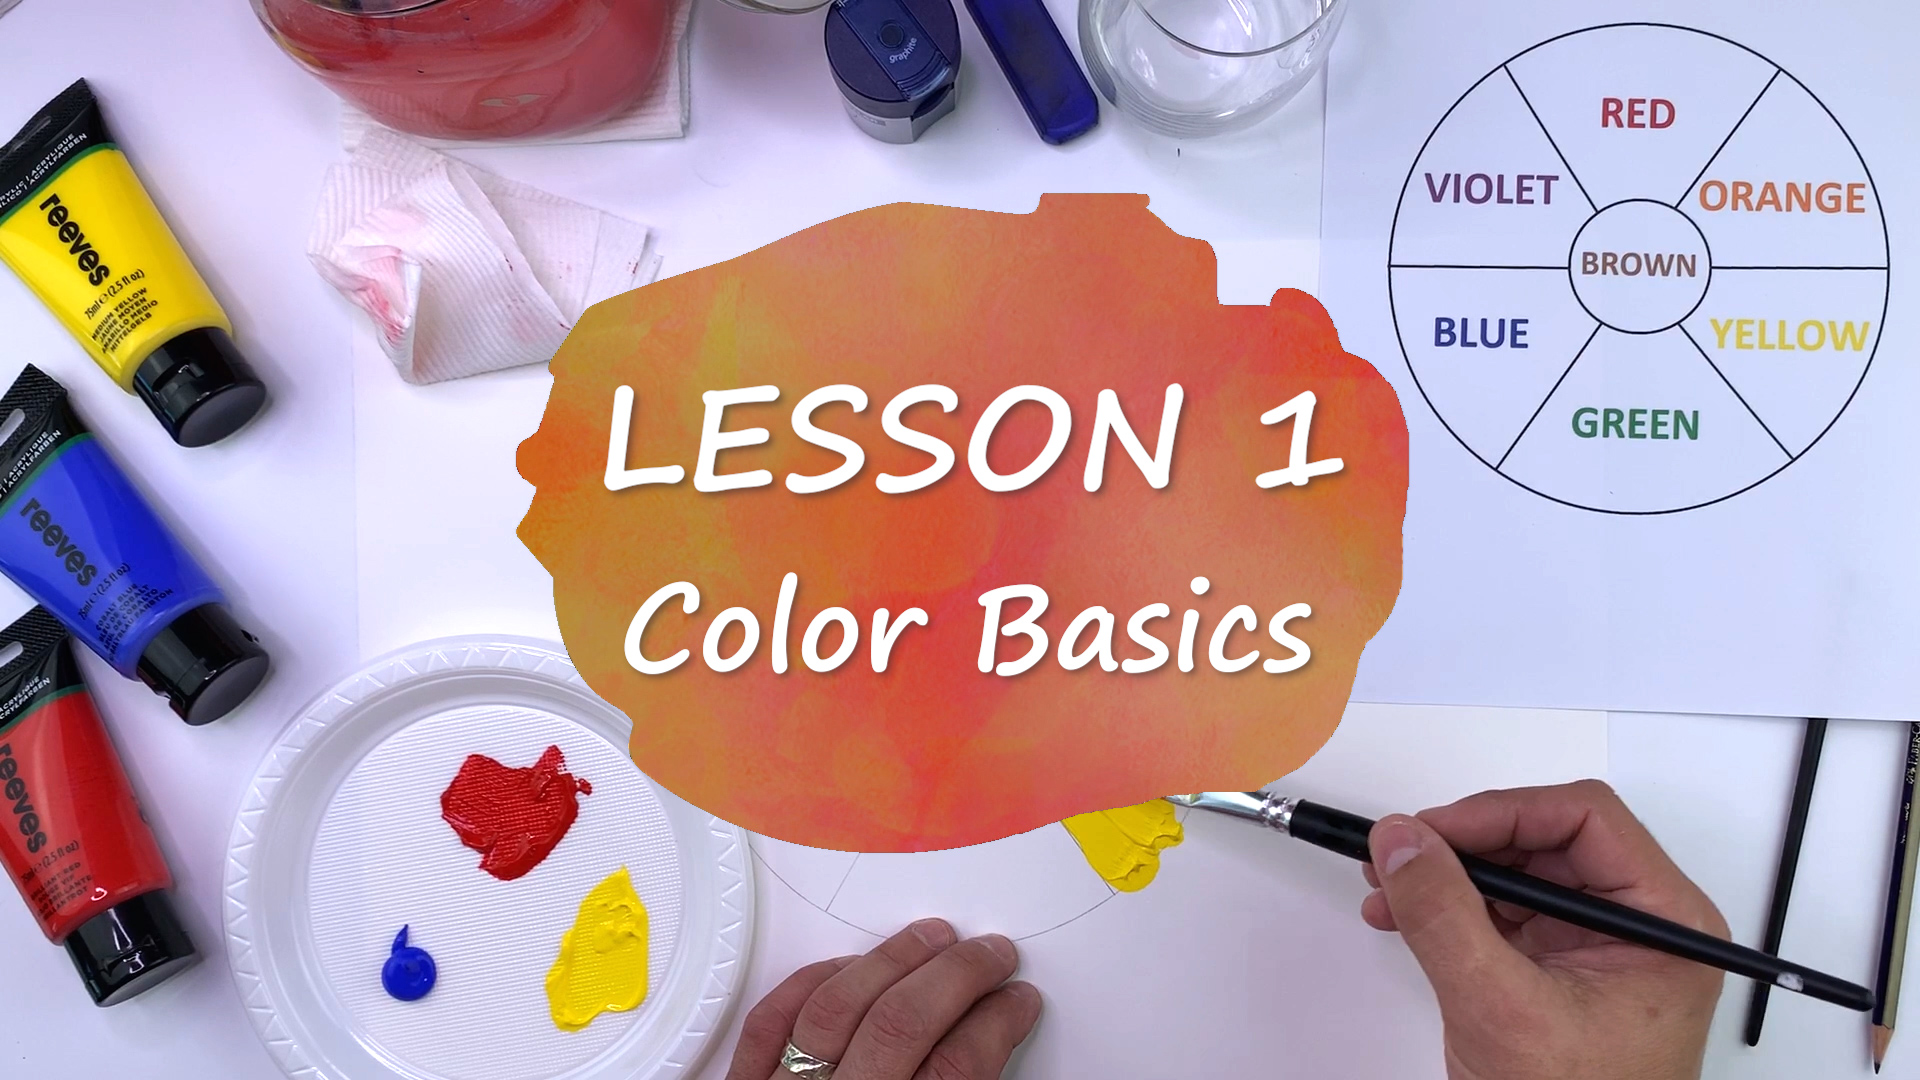 Color Basics - Color Wheel and Color Shading